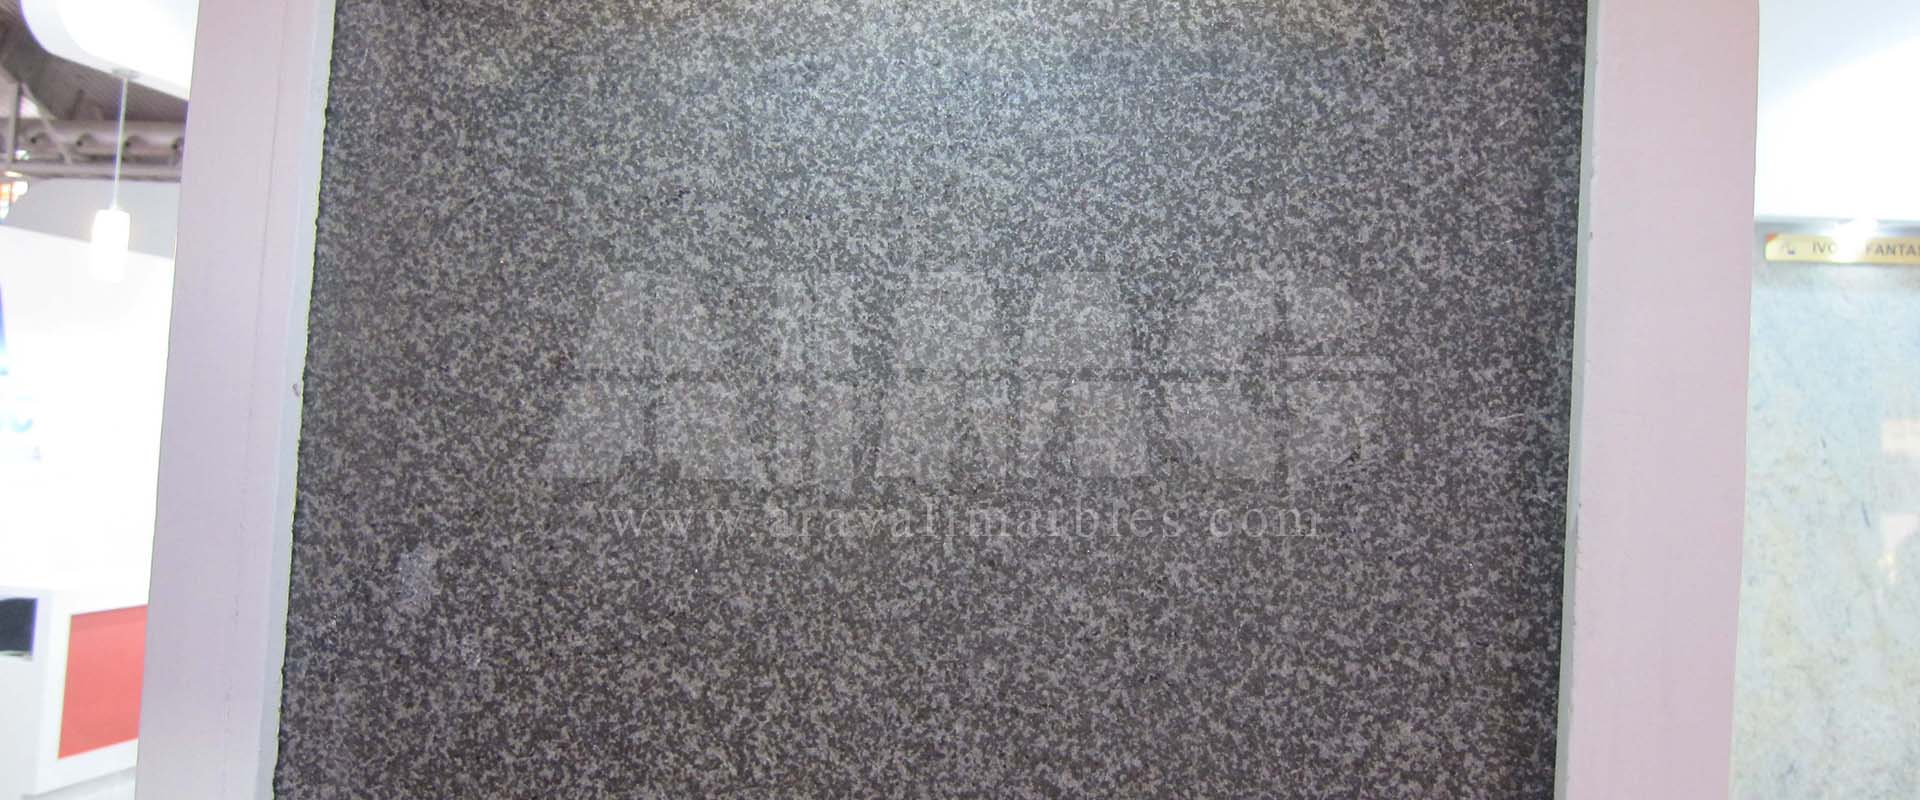 Impala Black Granite Slabs Manufacturers Suppliers Exporters In India